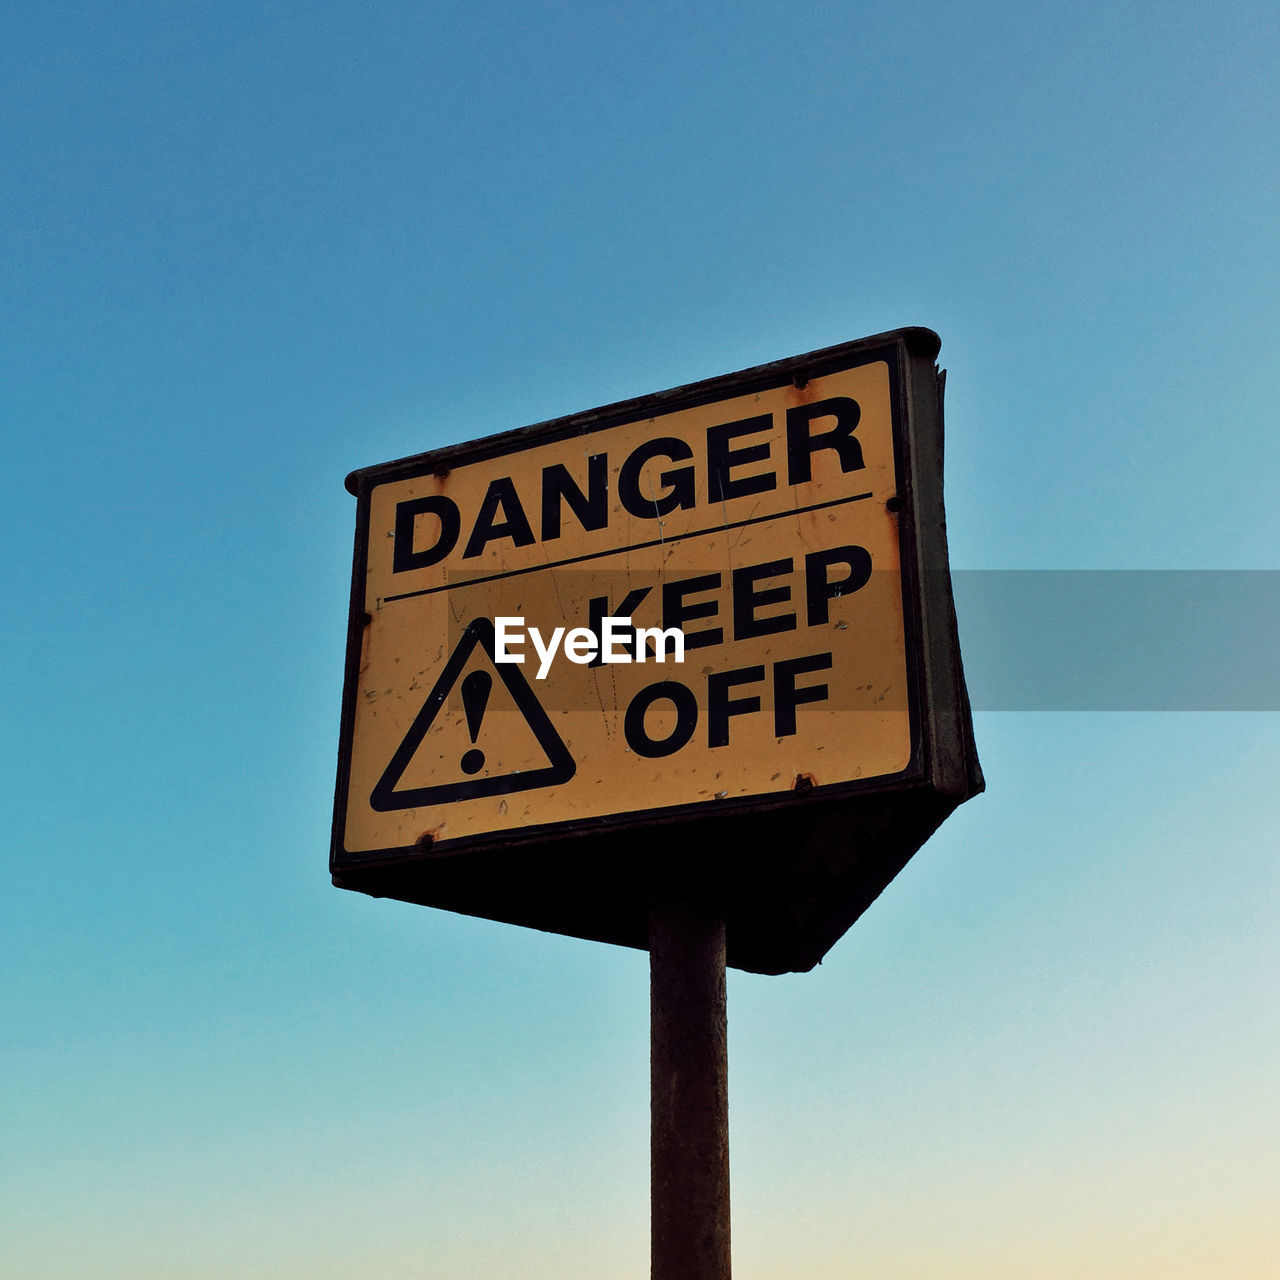 Low angle view of warning sign against blue sky